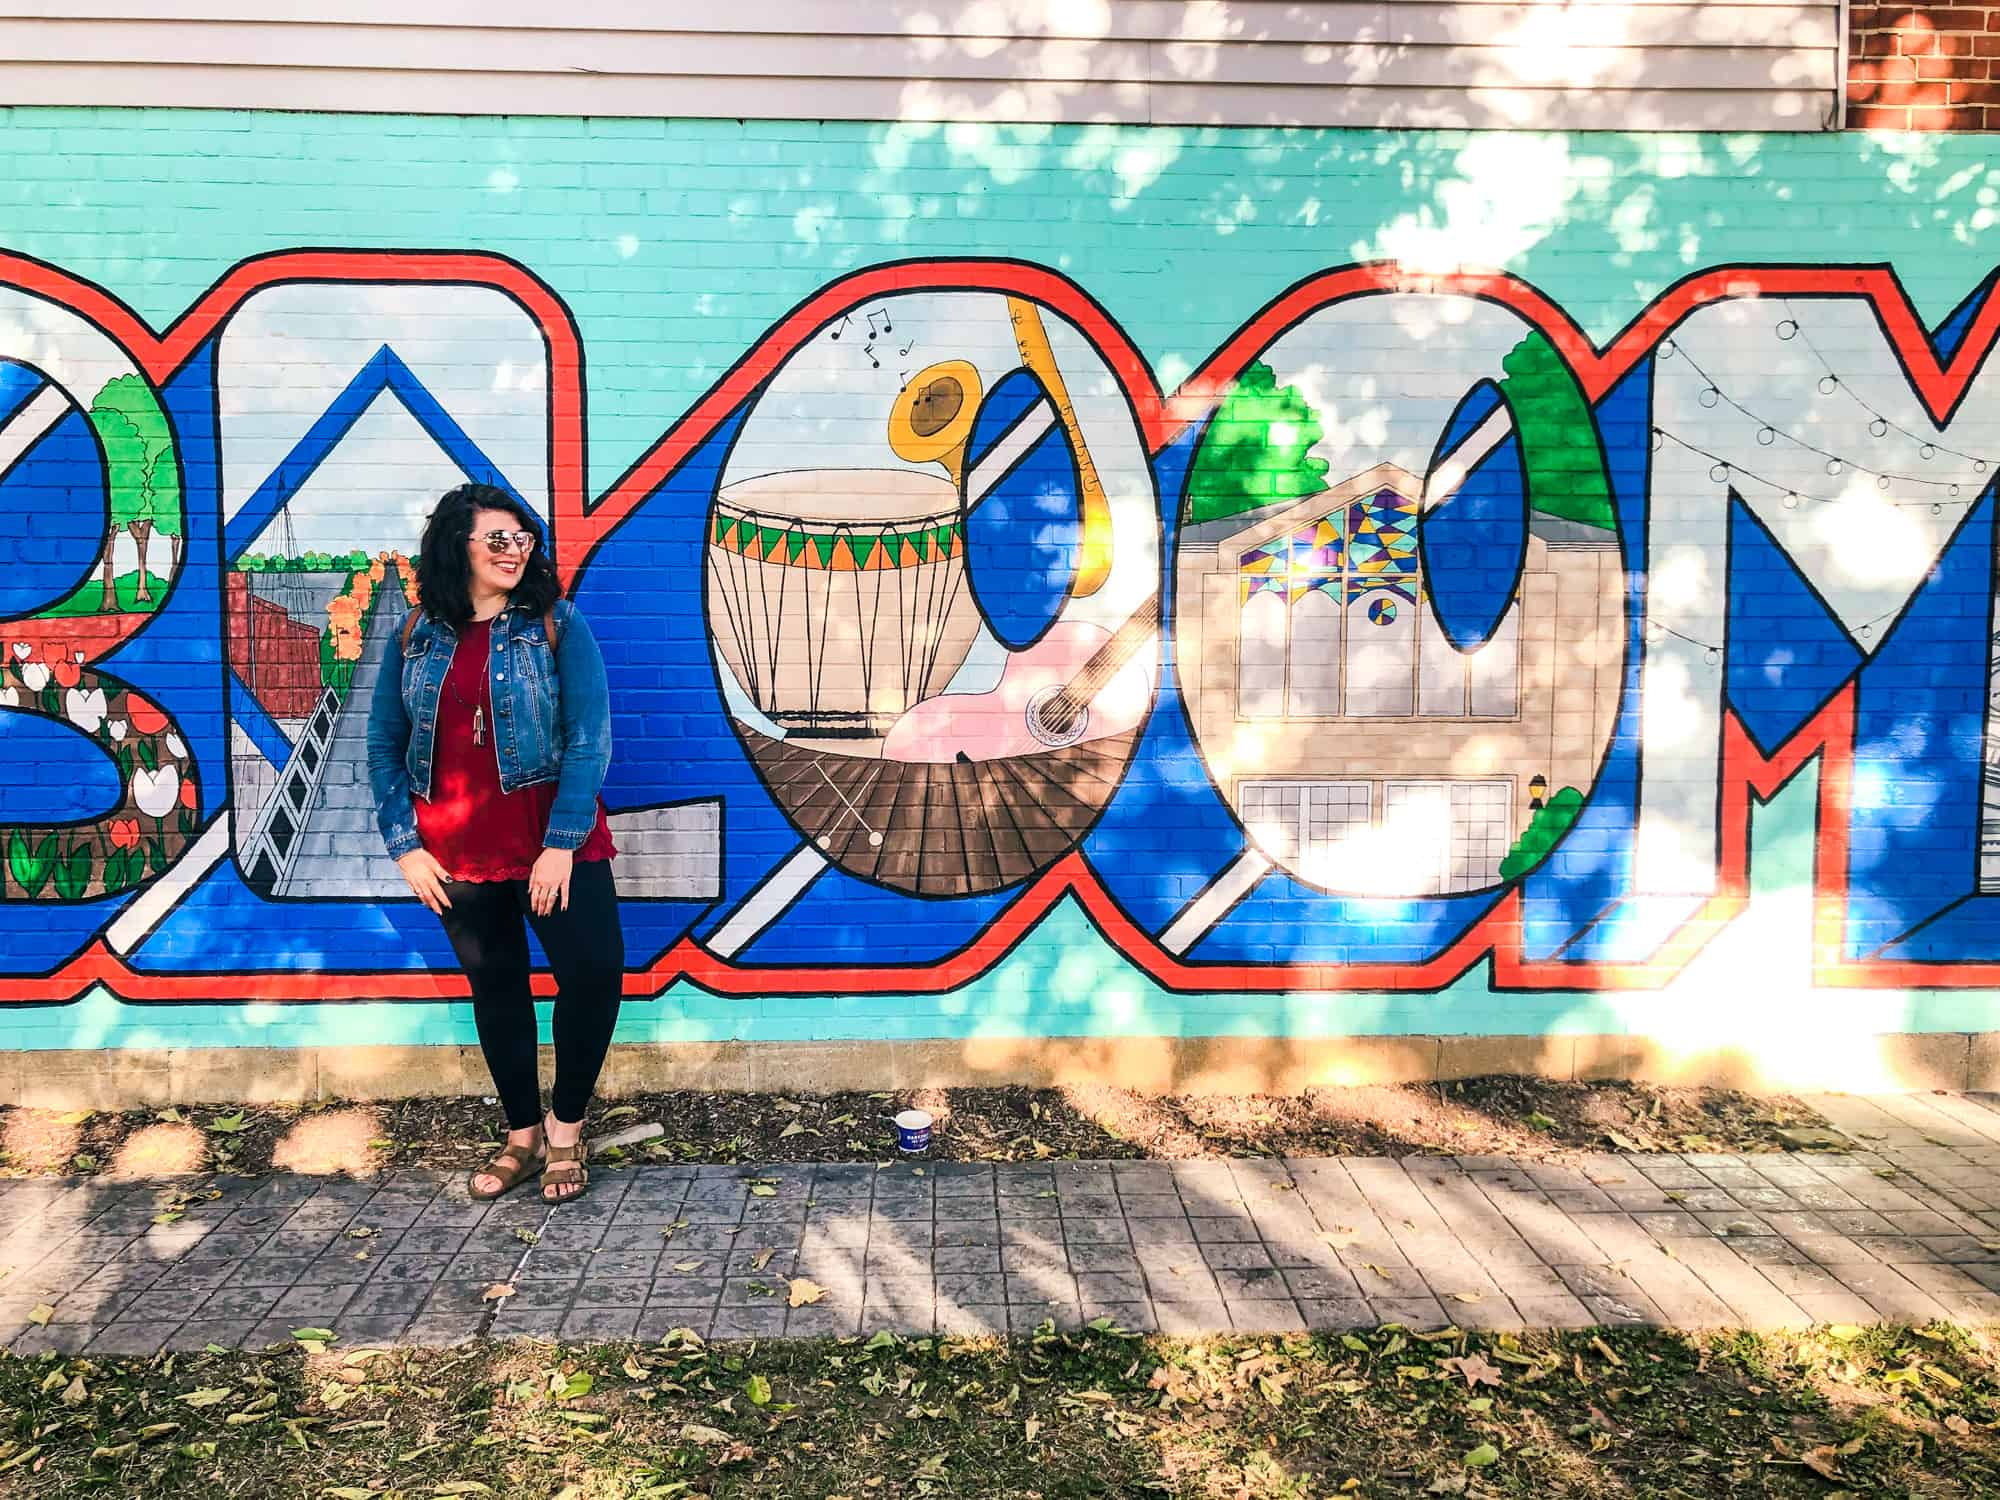 """Brunette woman in leggings and a denim jacket stands in front of a painted mural that says """"Bloomington,"""" though only the """"Bloom"""" is visible."""